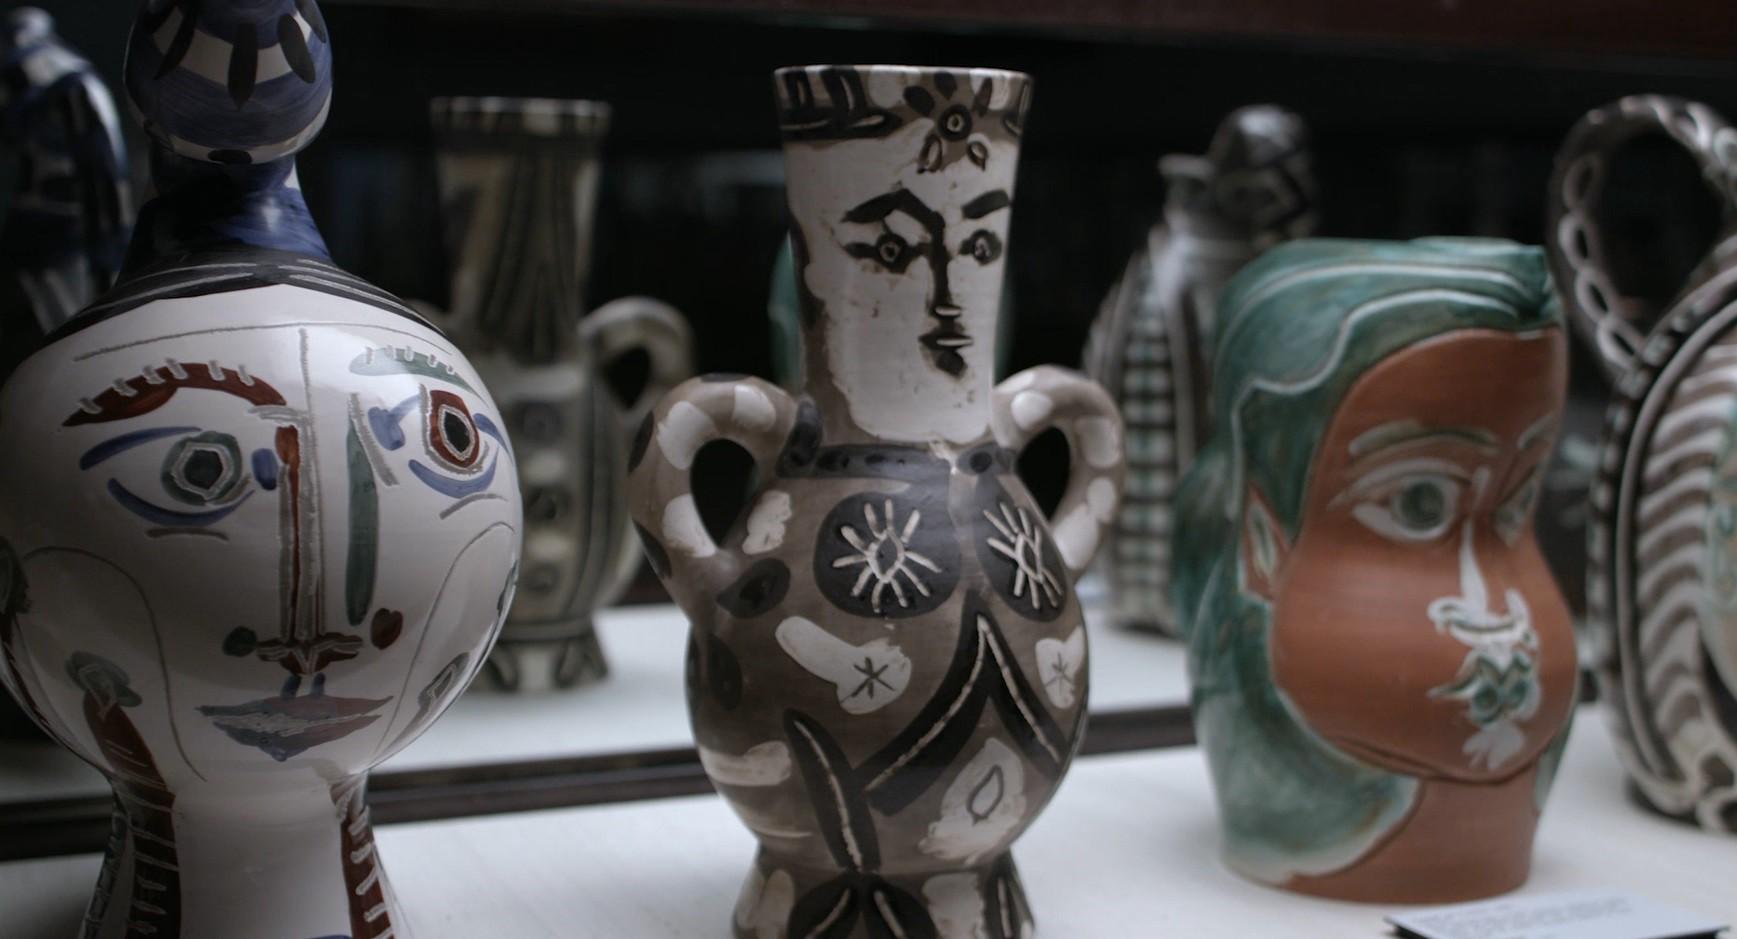 How Pablo Picasso Elevated The Ceramic Art By Park West Gallery Medium